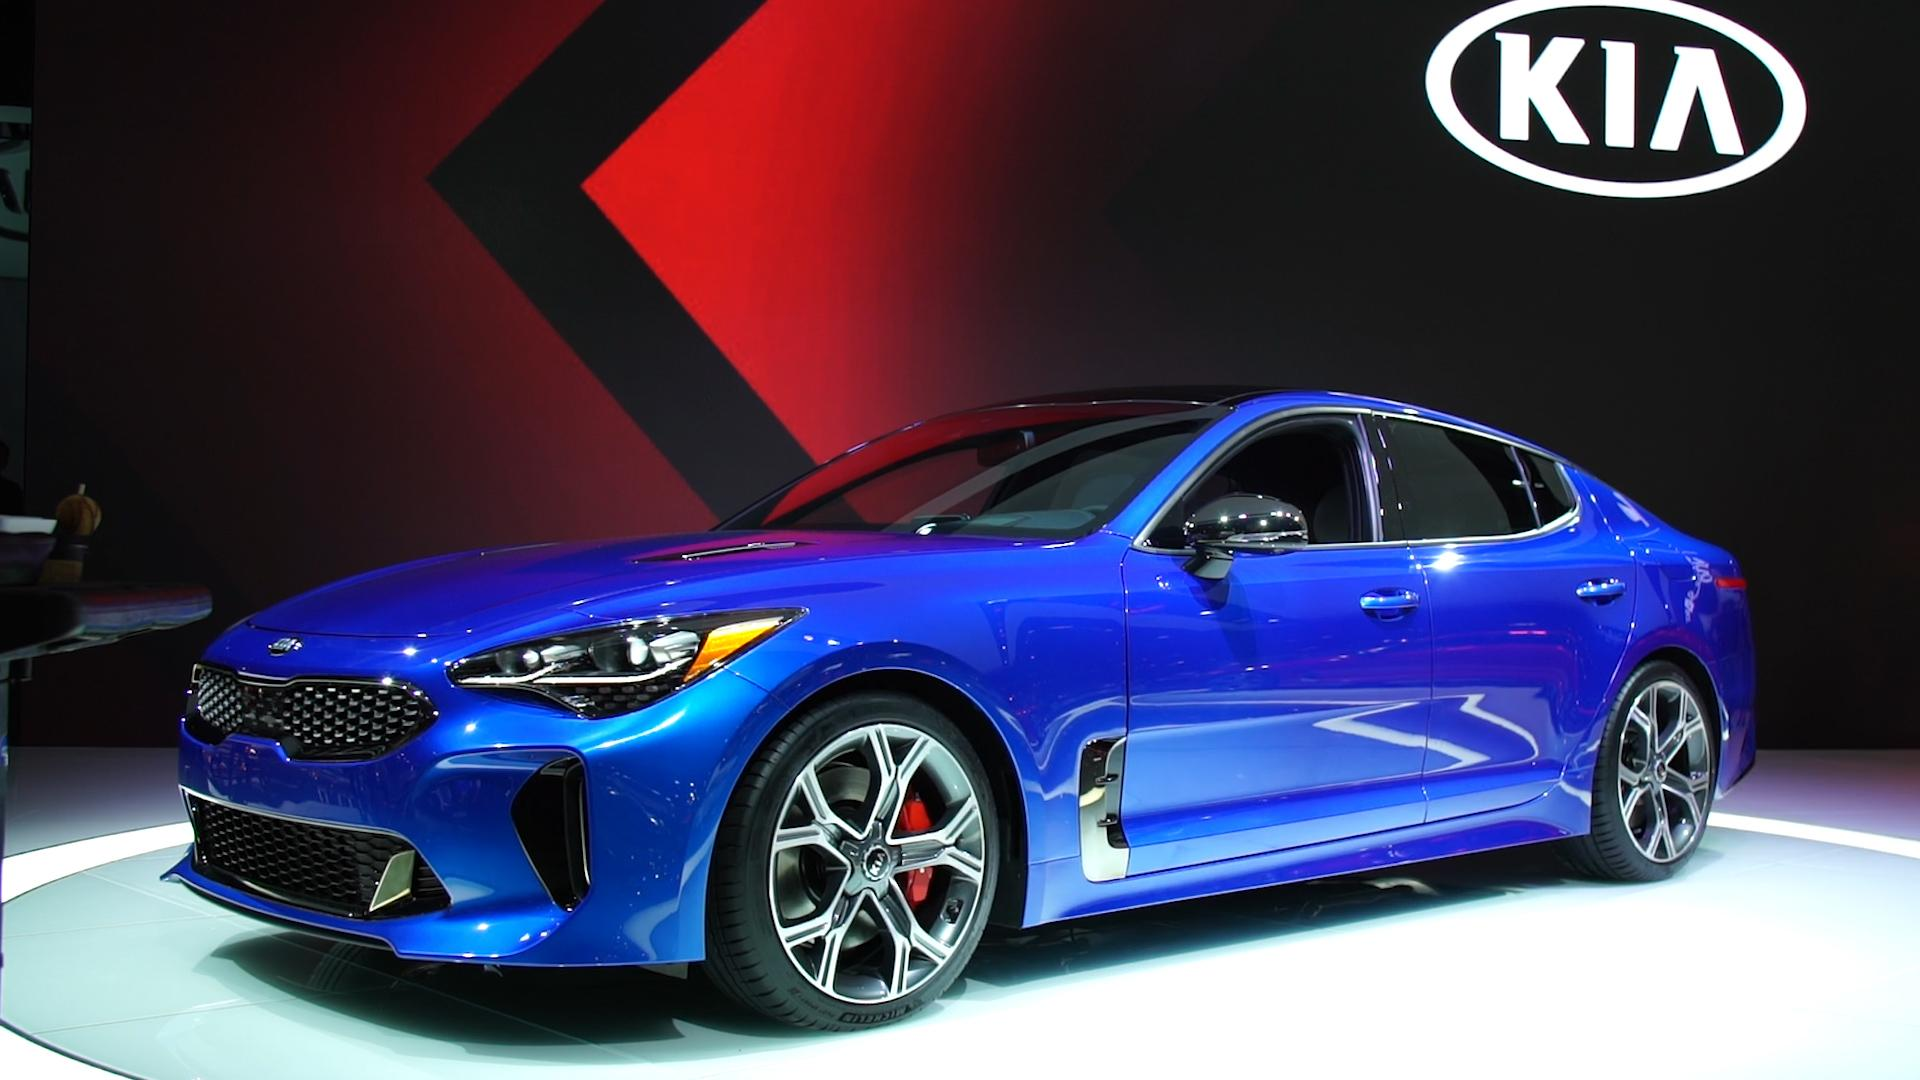 2018 kia stinger preview consumer reports. Black Bedroom Furniture Sets. Home Design Ideas